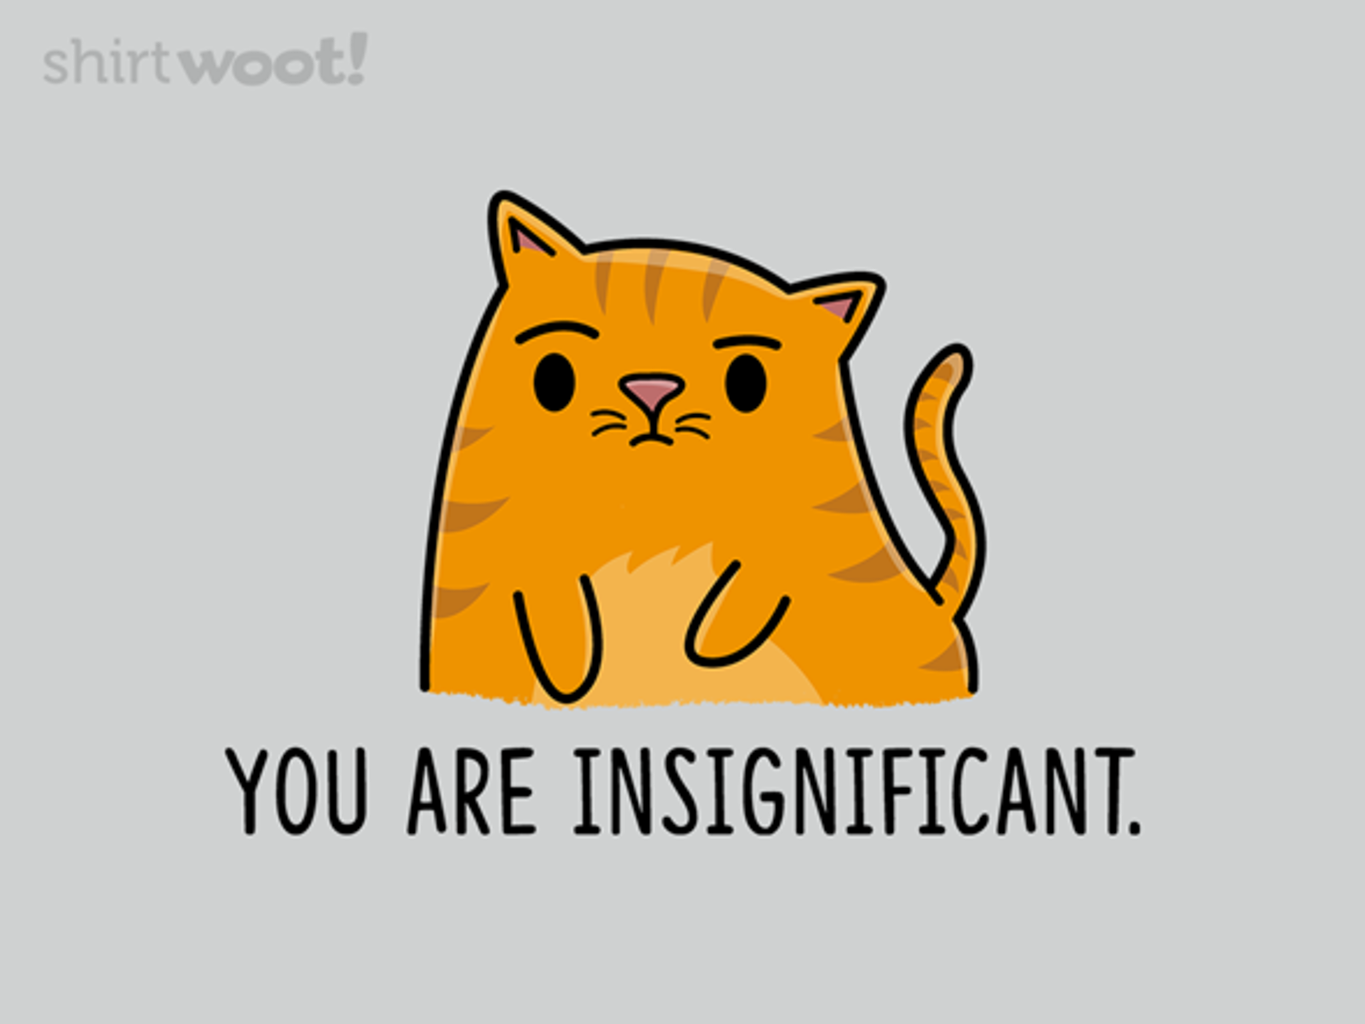 Woot!: You Are Insignificant - $15.00 + Free shipping